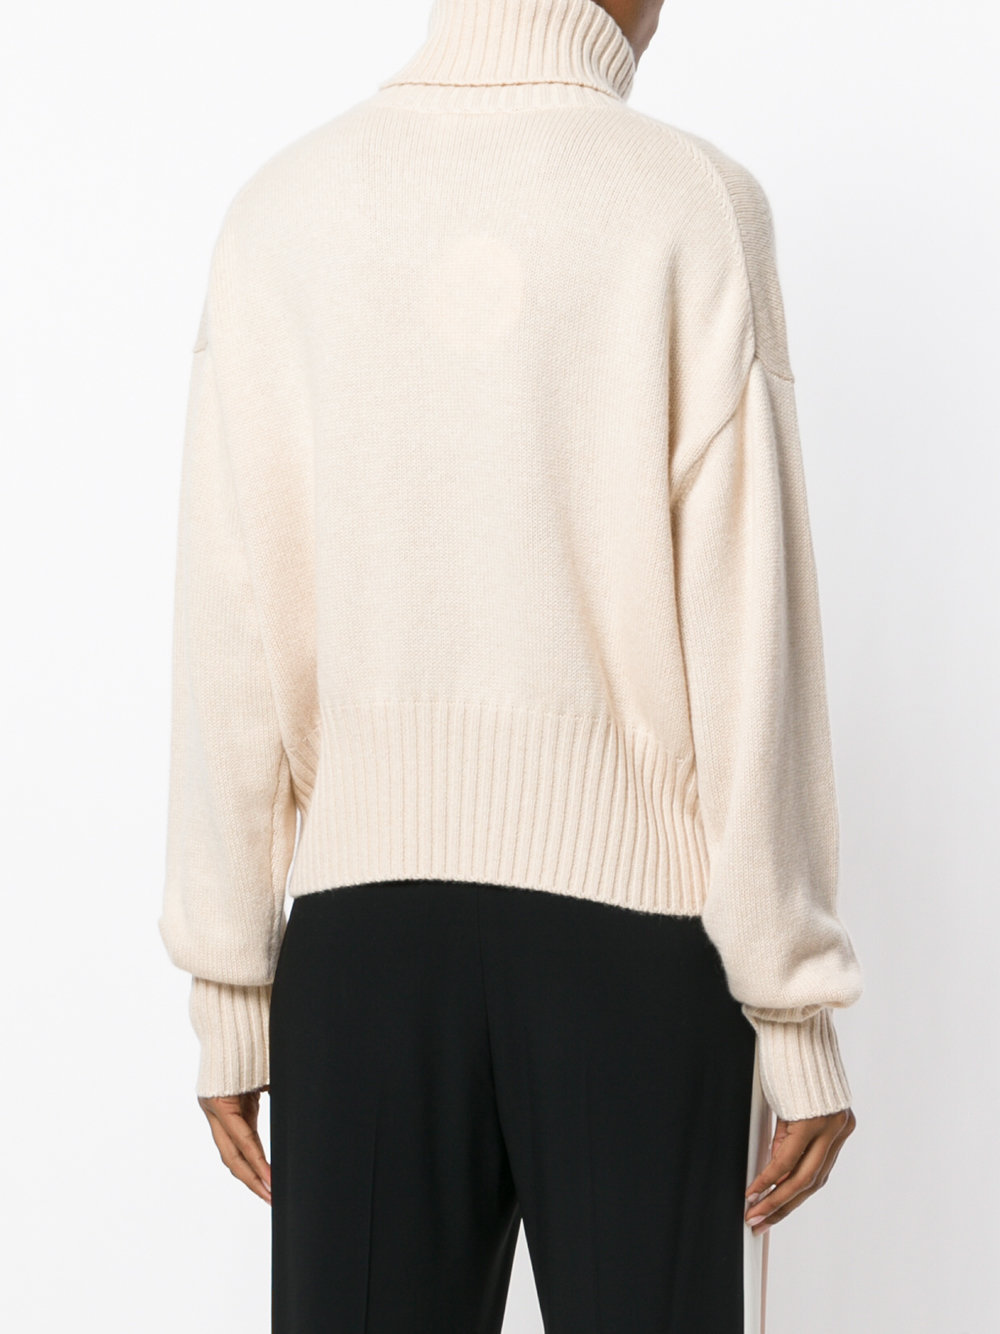 17-18AW C254 TURTLENECK CASHMERE SWEATER WITH FRONT POCKET